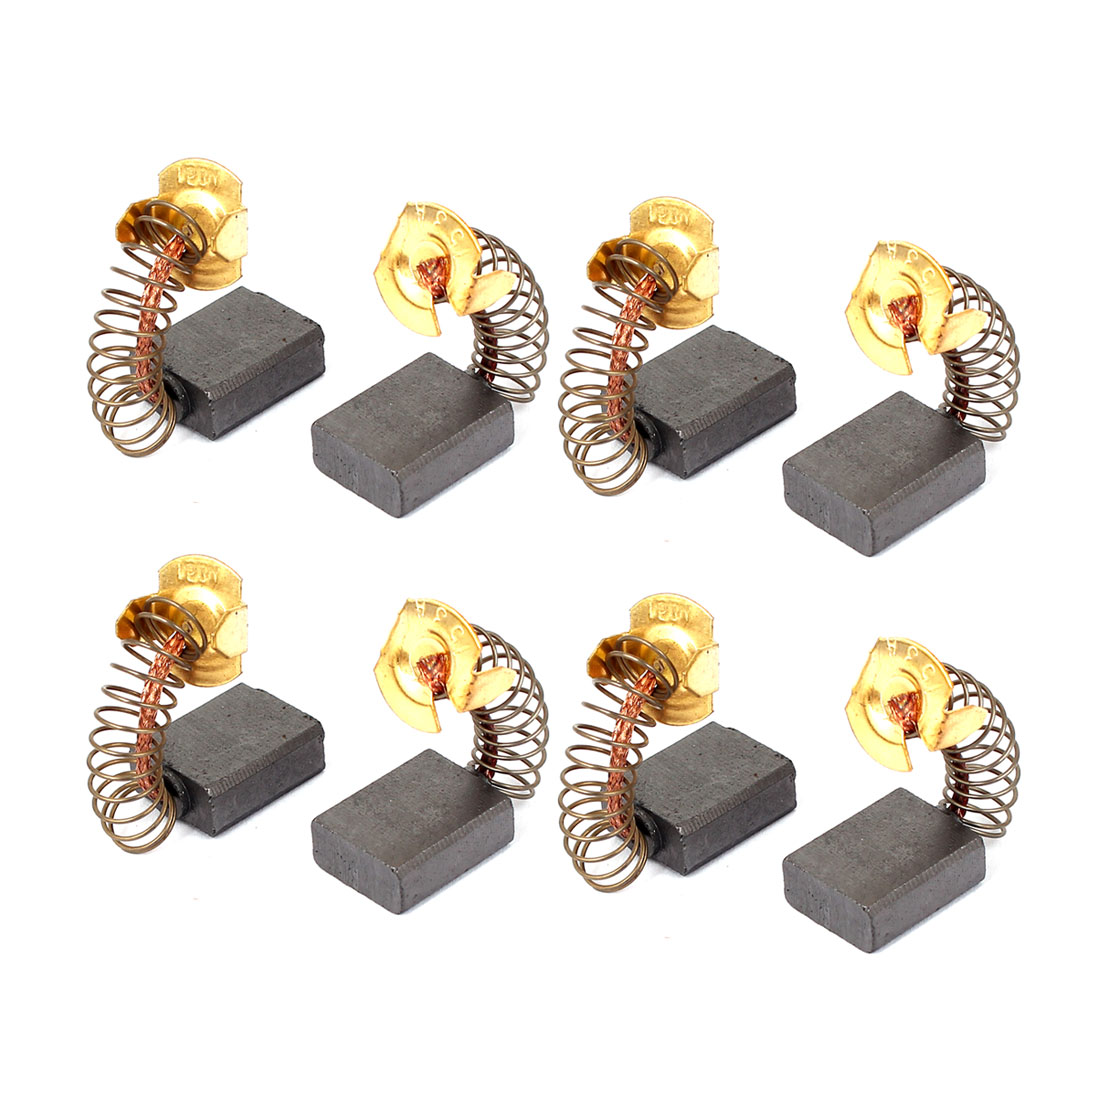 8 Pcs Replacement Motor Carbon Brushes 17mm x 13mm x 6mm for Electric Motors